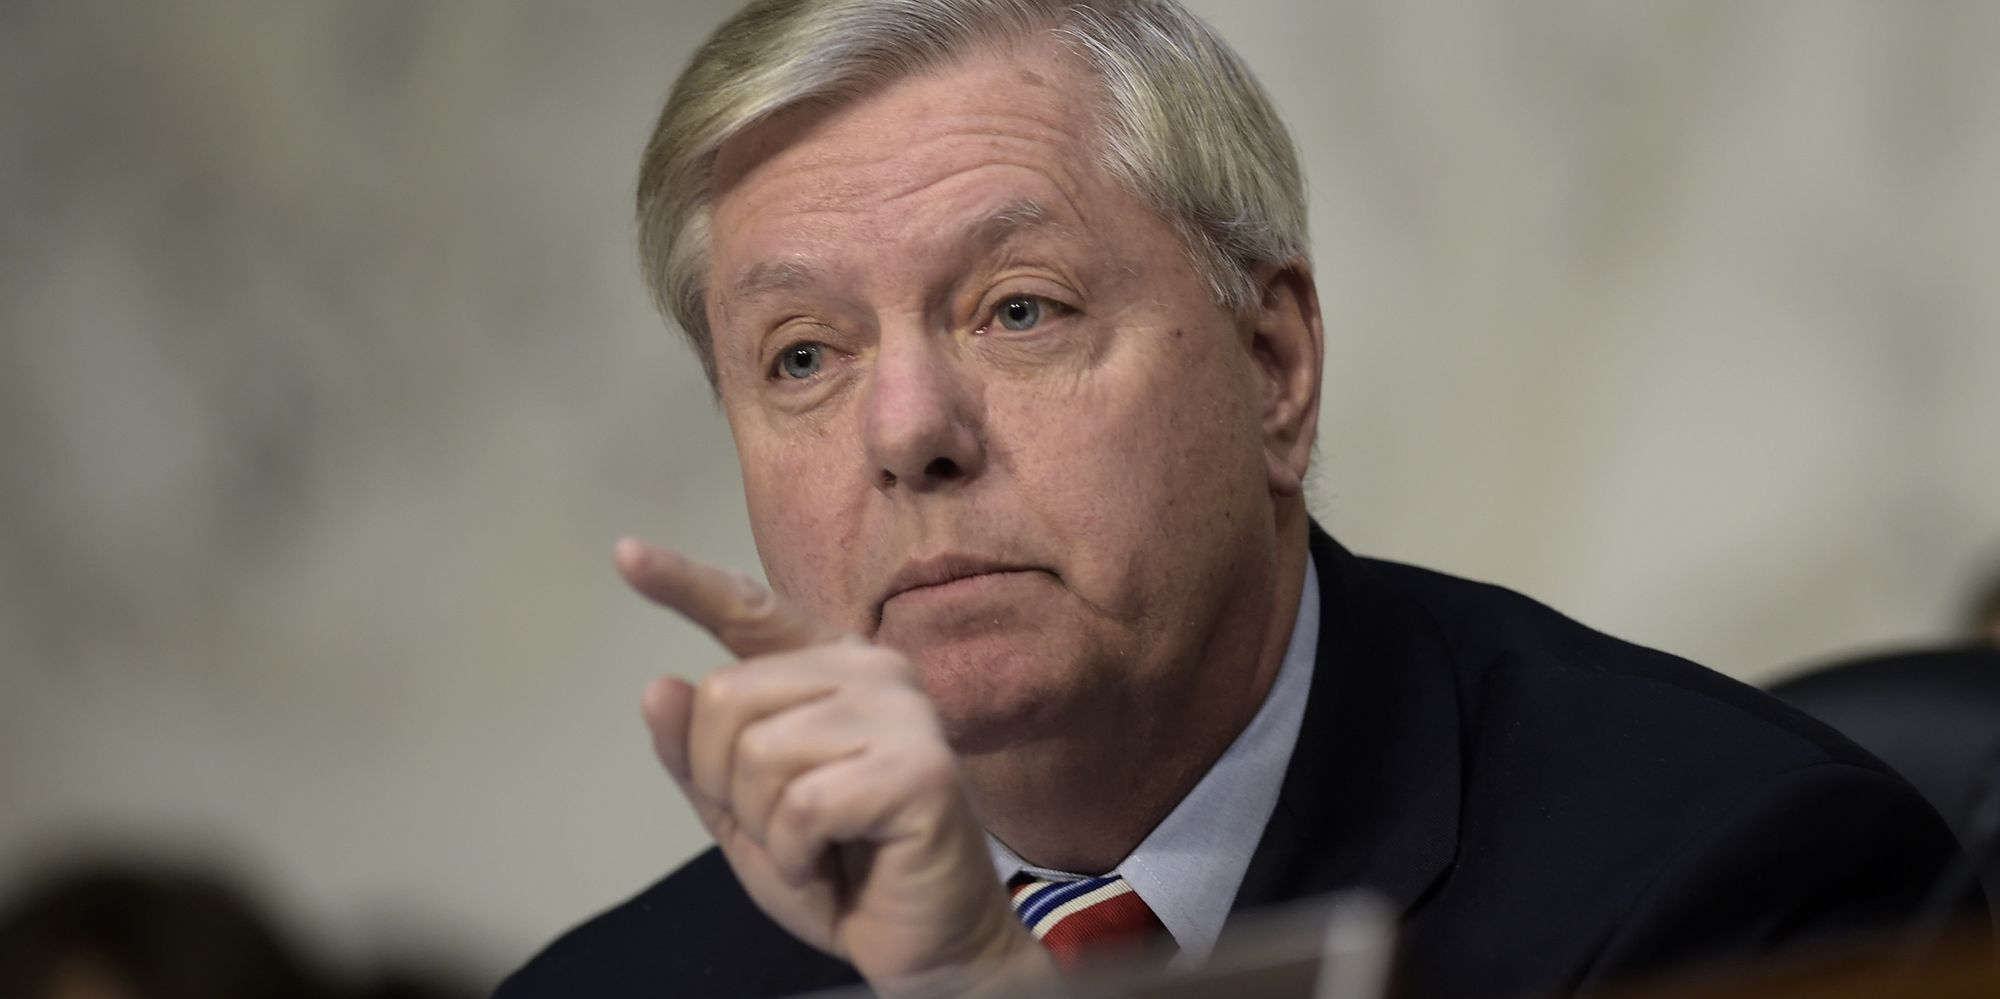 Lindsey Graham: Trump Should Apologize For Wiretap Claim Or His Credibility Will 'Suffer'